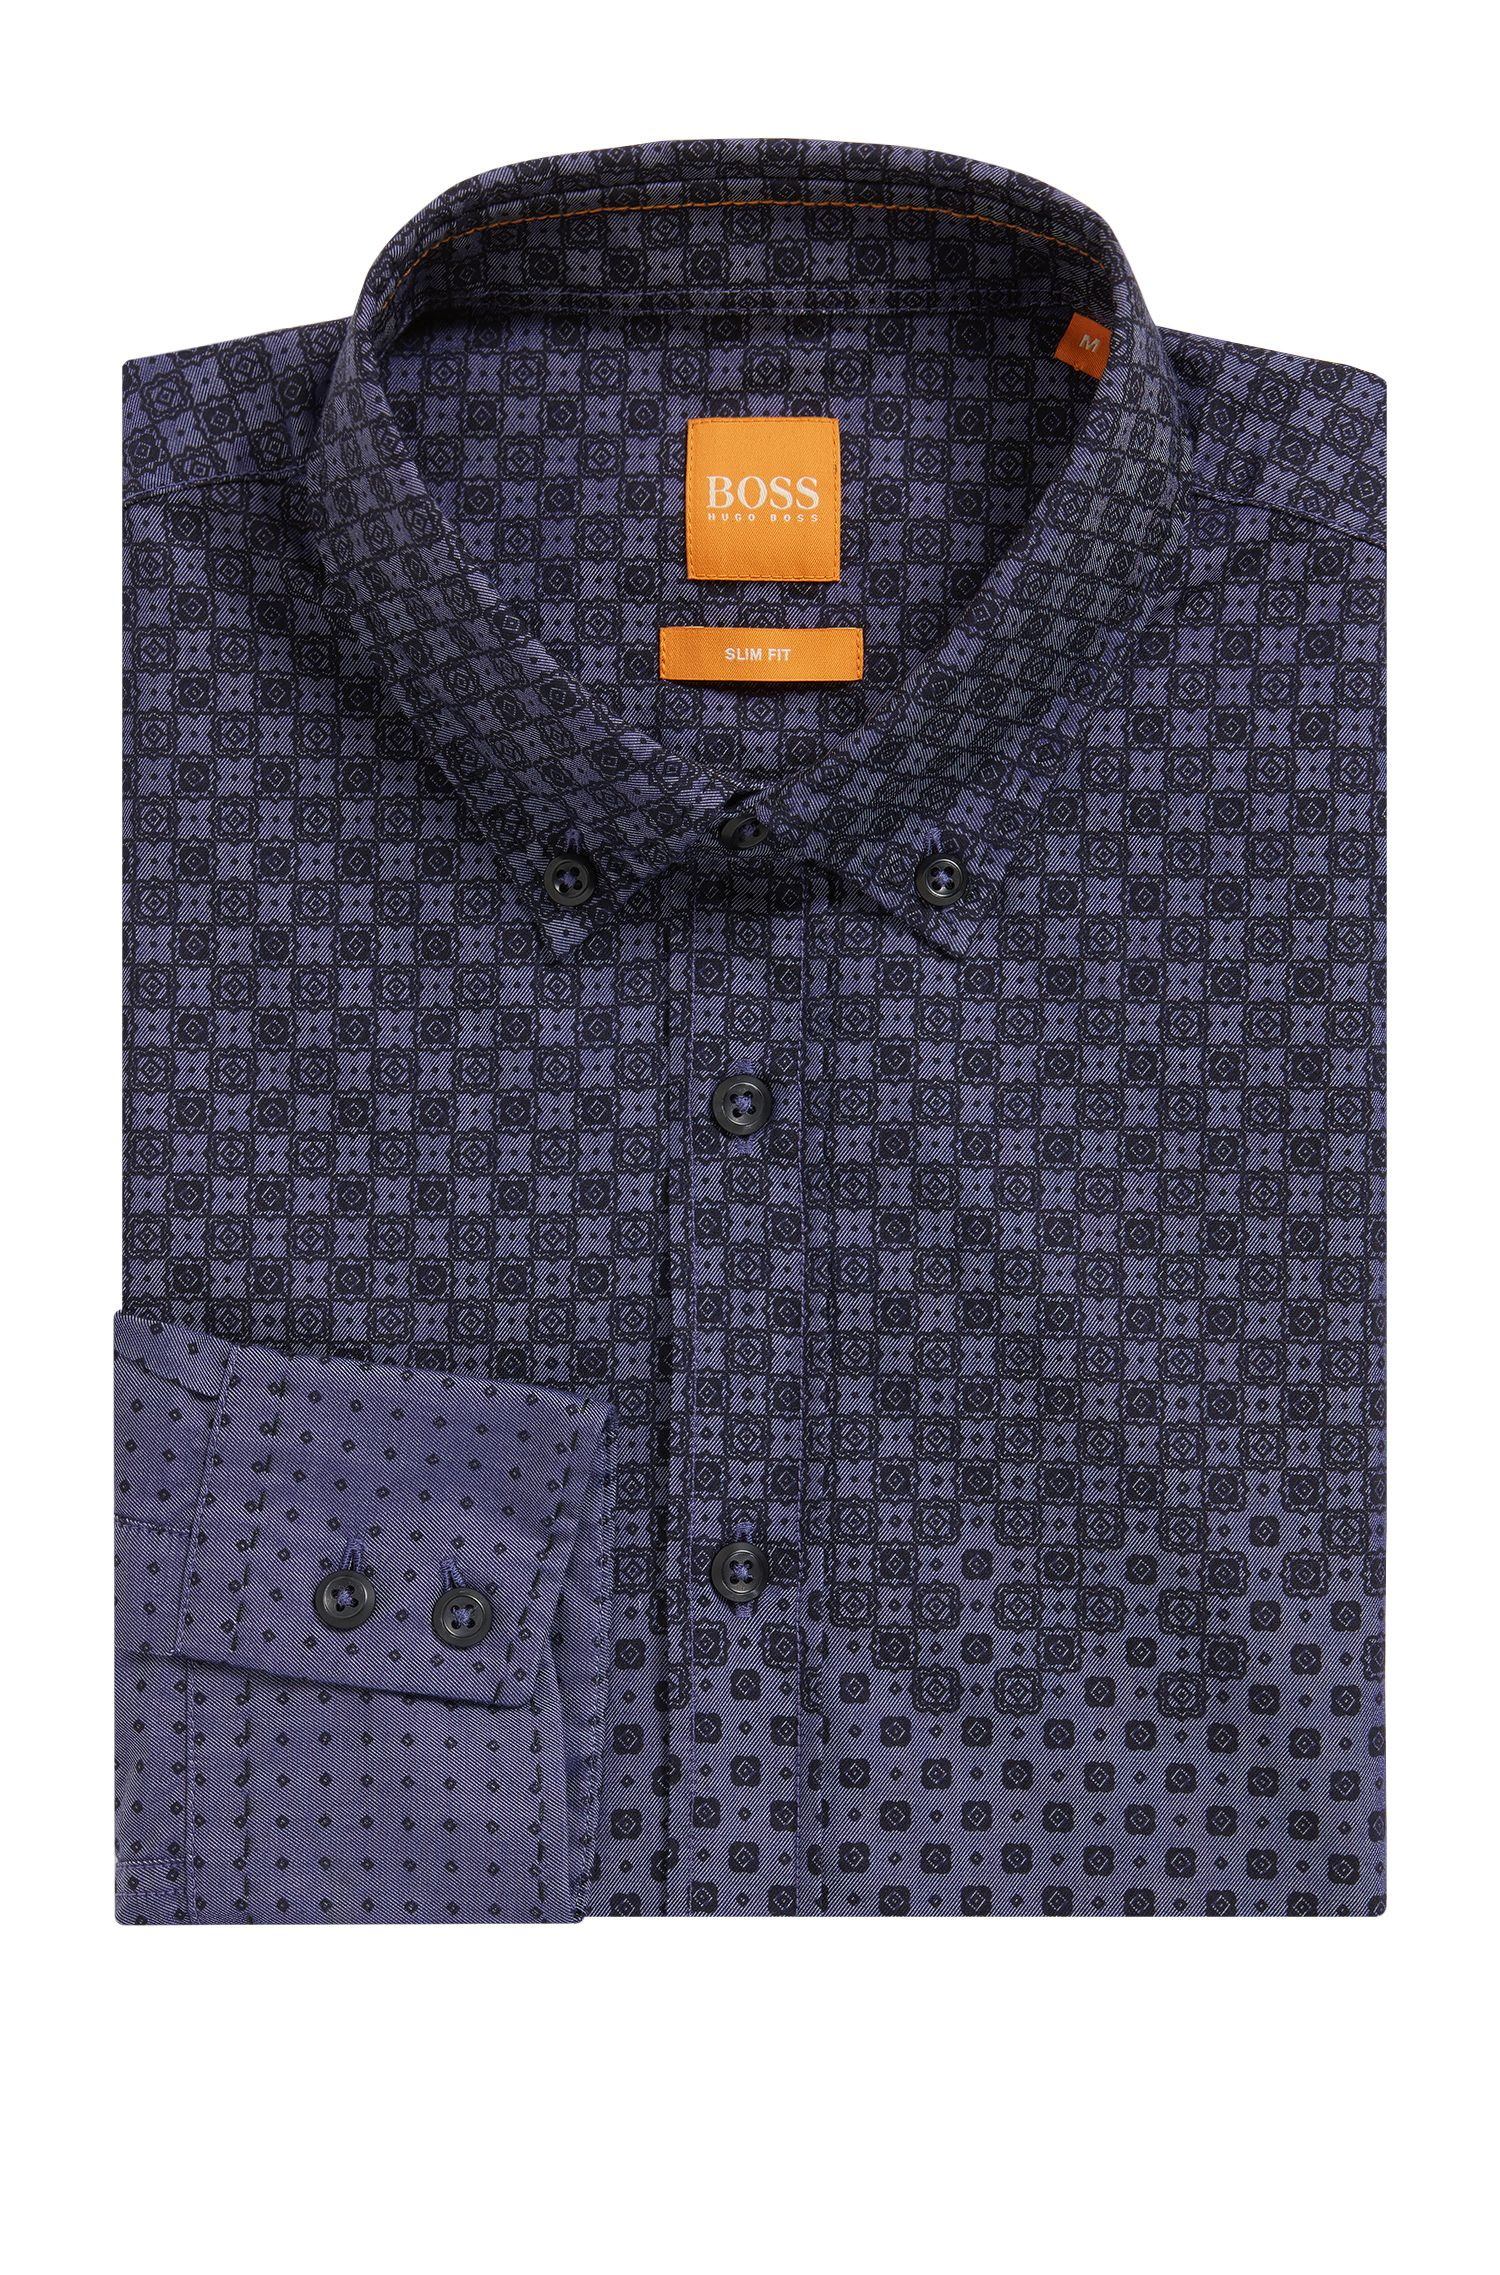 'Epreppy' | Slim Fit, Geometric Cotton Button Down Shirt